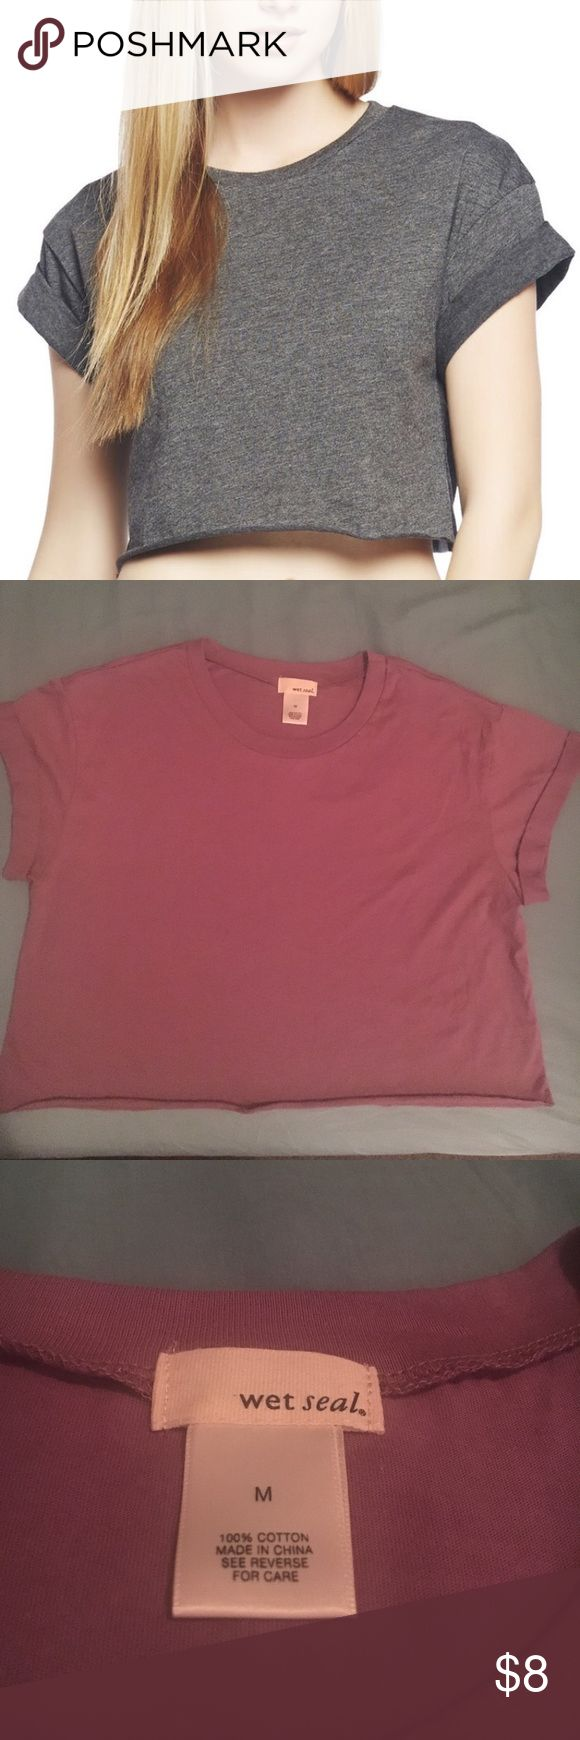 WET SEAL Crop Tee ❗️PRICE IS FIRM❗️FIRST PIC IS THE SAME SHIRT JUST IN A DIFFERENT COLOR: SIZE MEDIUM: COLOR: Mauve: ROLLED SLEEVES (SLEEVES CAN NOT BE UNFOLDED): CUT OFF HEM: NEVER WORE IT; NEW WITHOUT TAGS!; DO YOU SEE THE BUY NOW BUTTON?? IF SO, IT IS STILL AVAILABLE: 🚫NO TRADES, NO MERCARI🚫 Wet Seal Tops Crop Tops